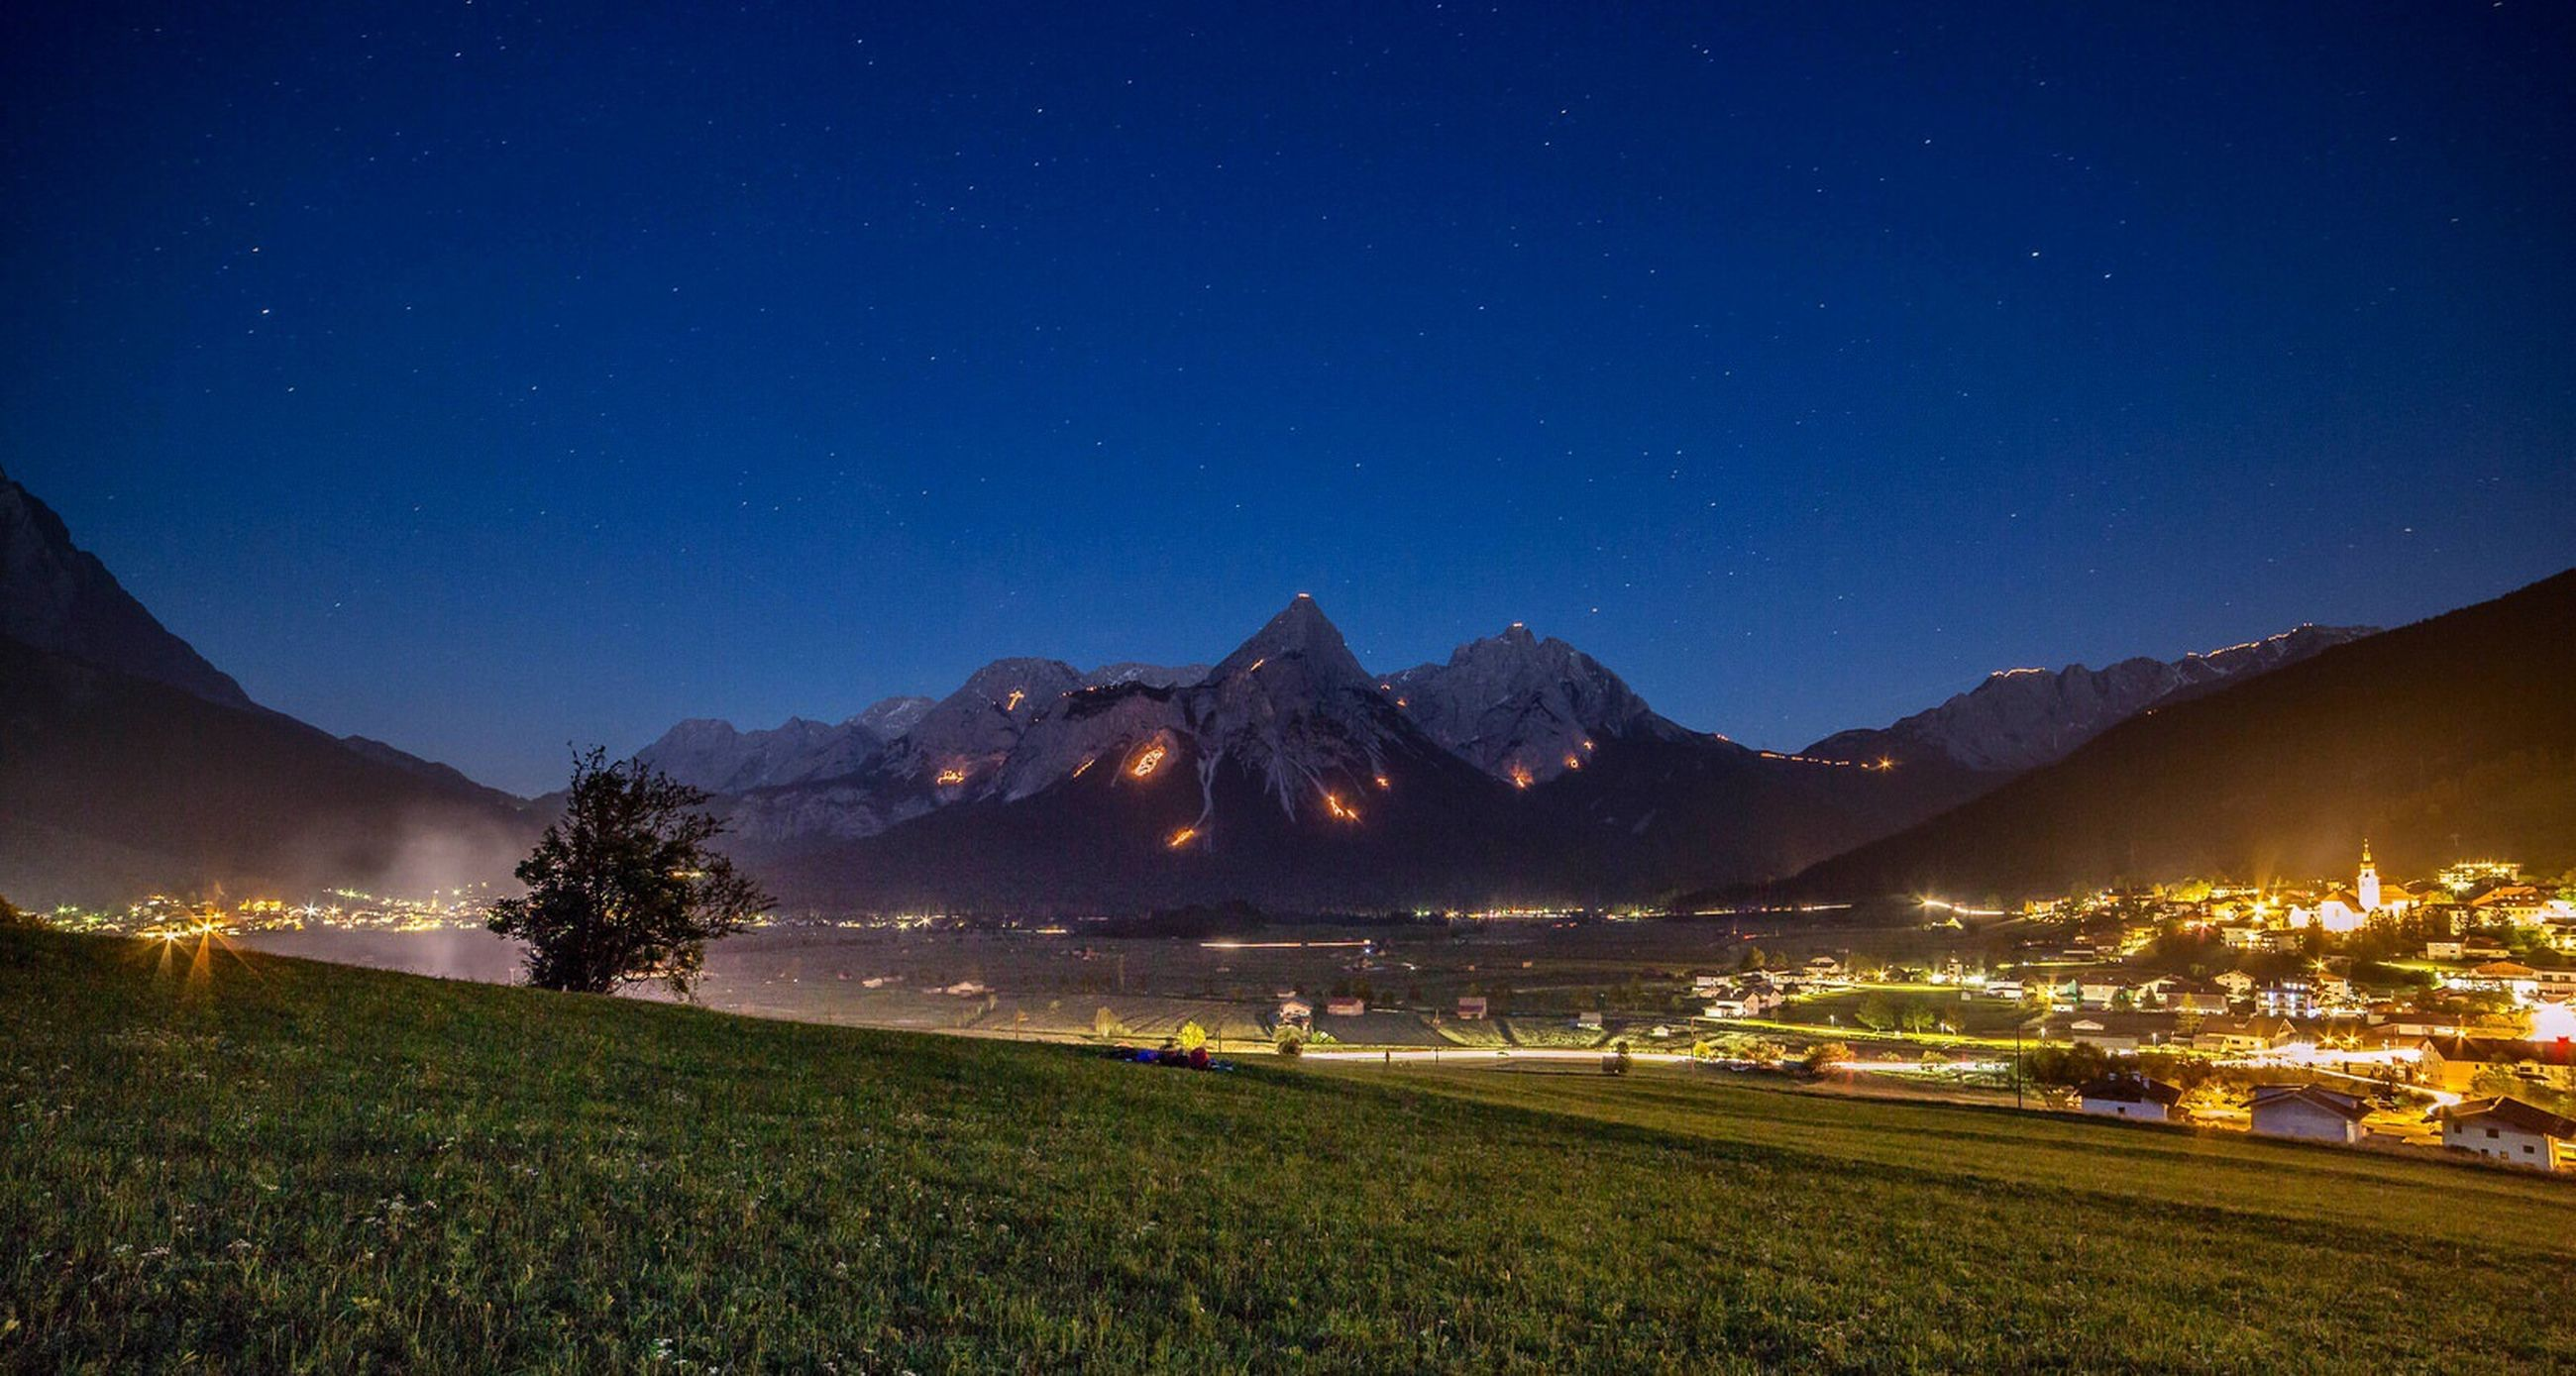 night, mountain, illuminated, mountain range, scenics, tranquil scene, landscape, tranquility, beauty in nature, clear sky, nature, moon, sky, star - space, idyllic, blue, copy space, outdoors, star field, majestic